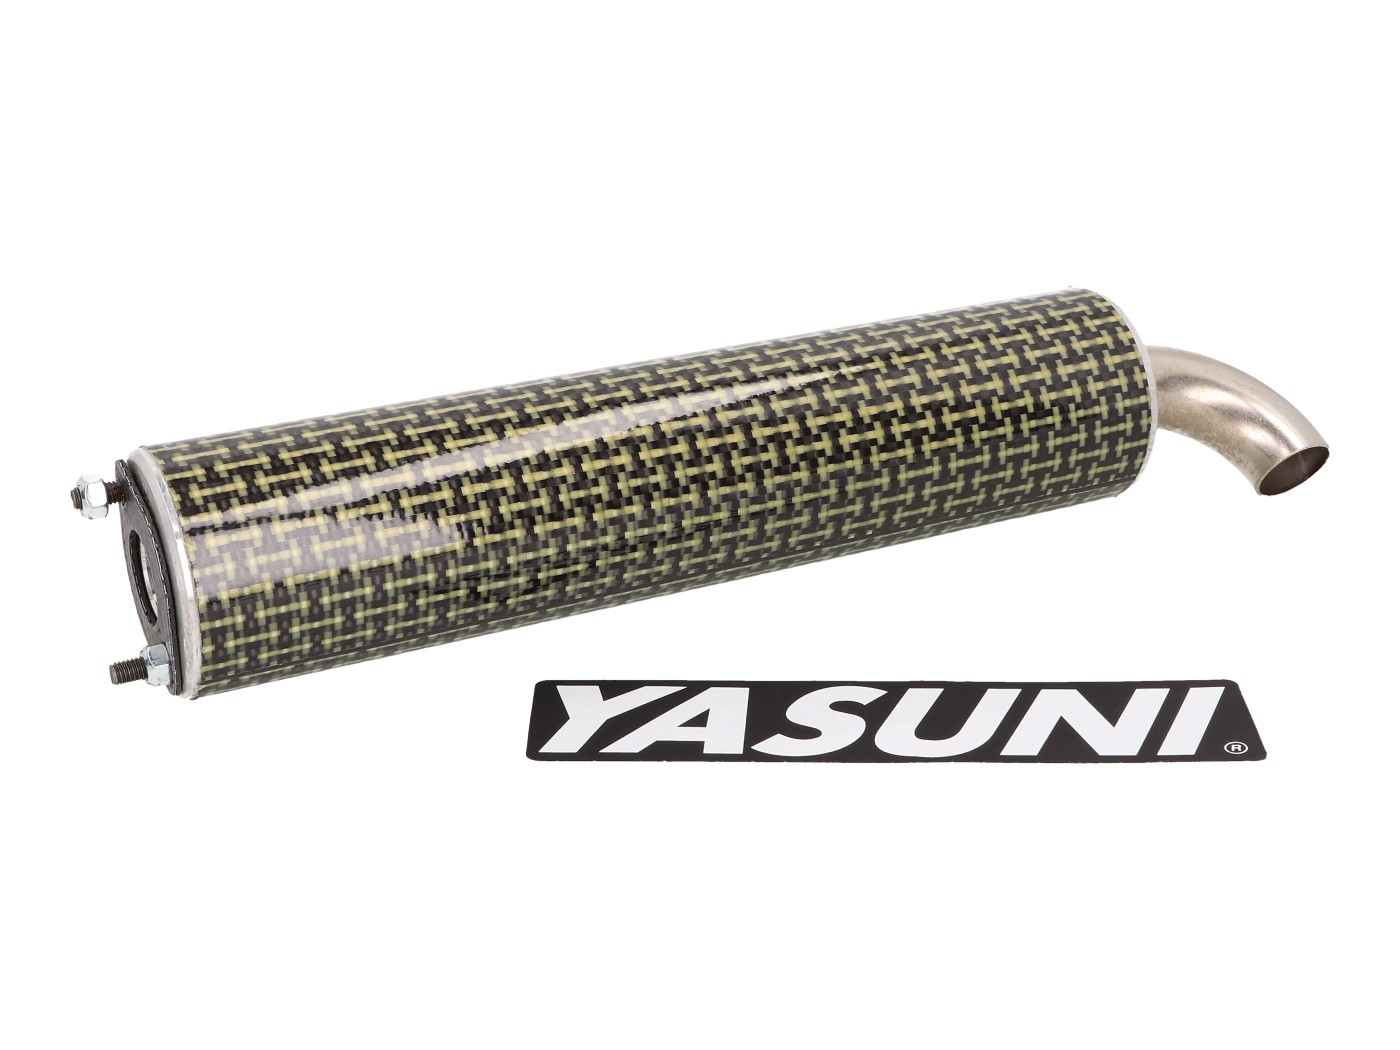 Piaggio Yasuni High-Performance Scooter Exhaust in Aluminum